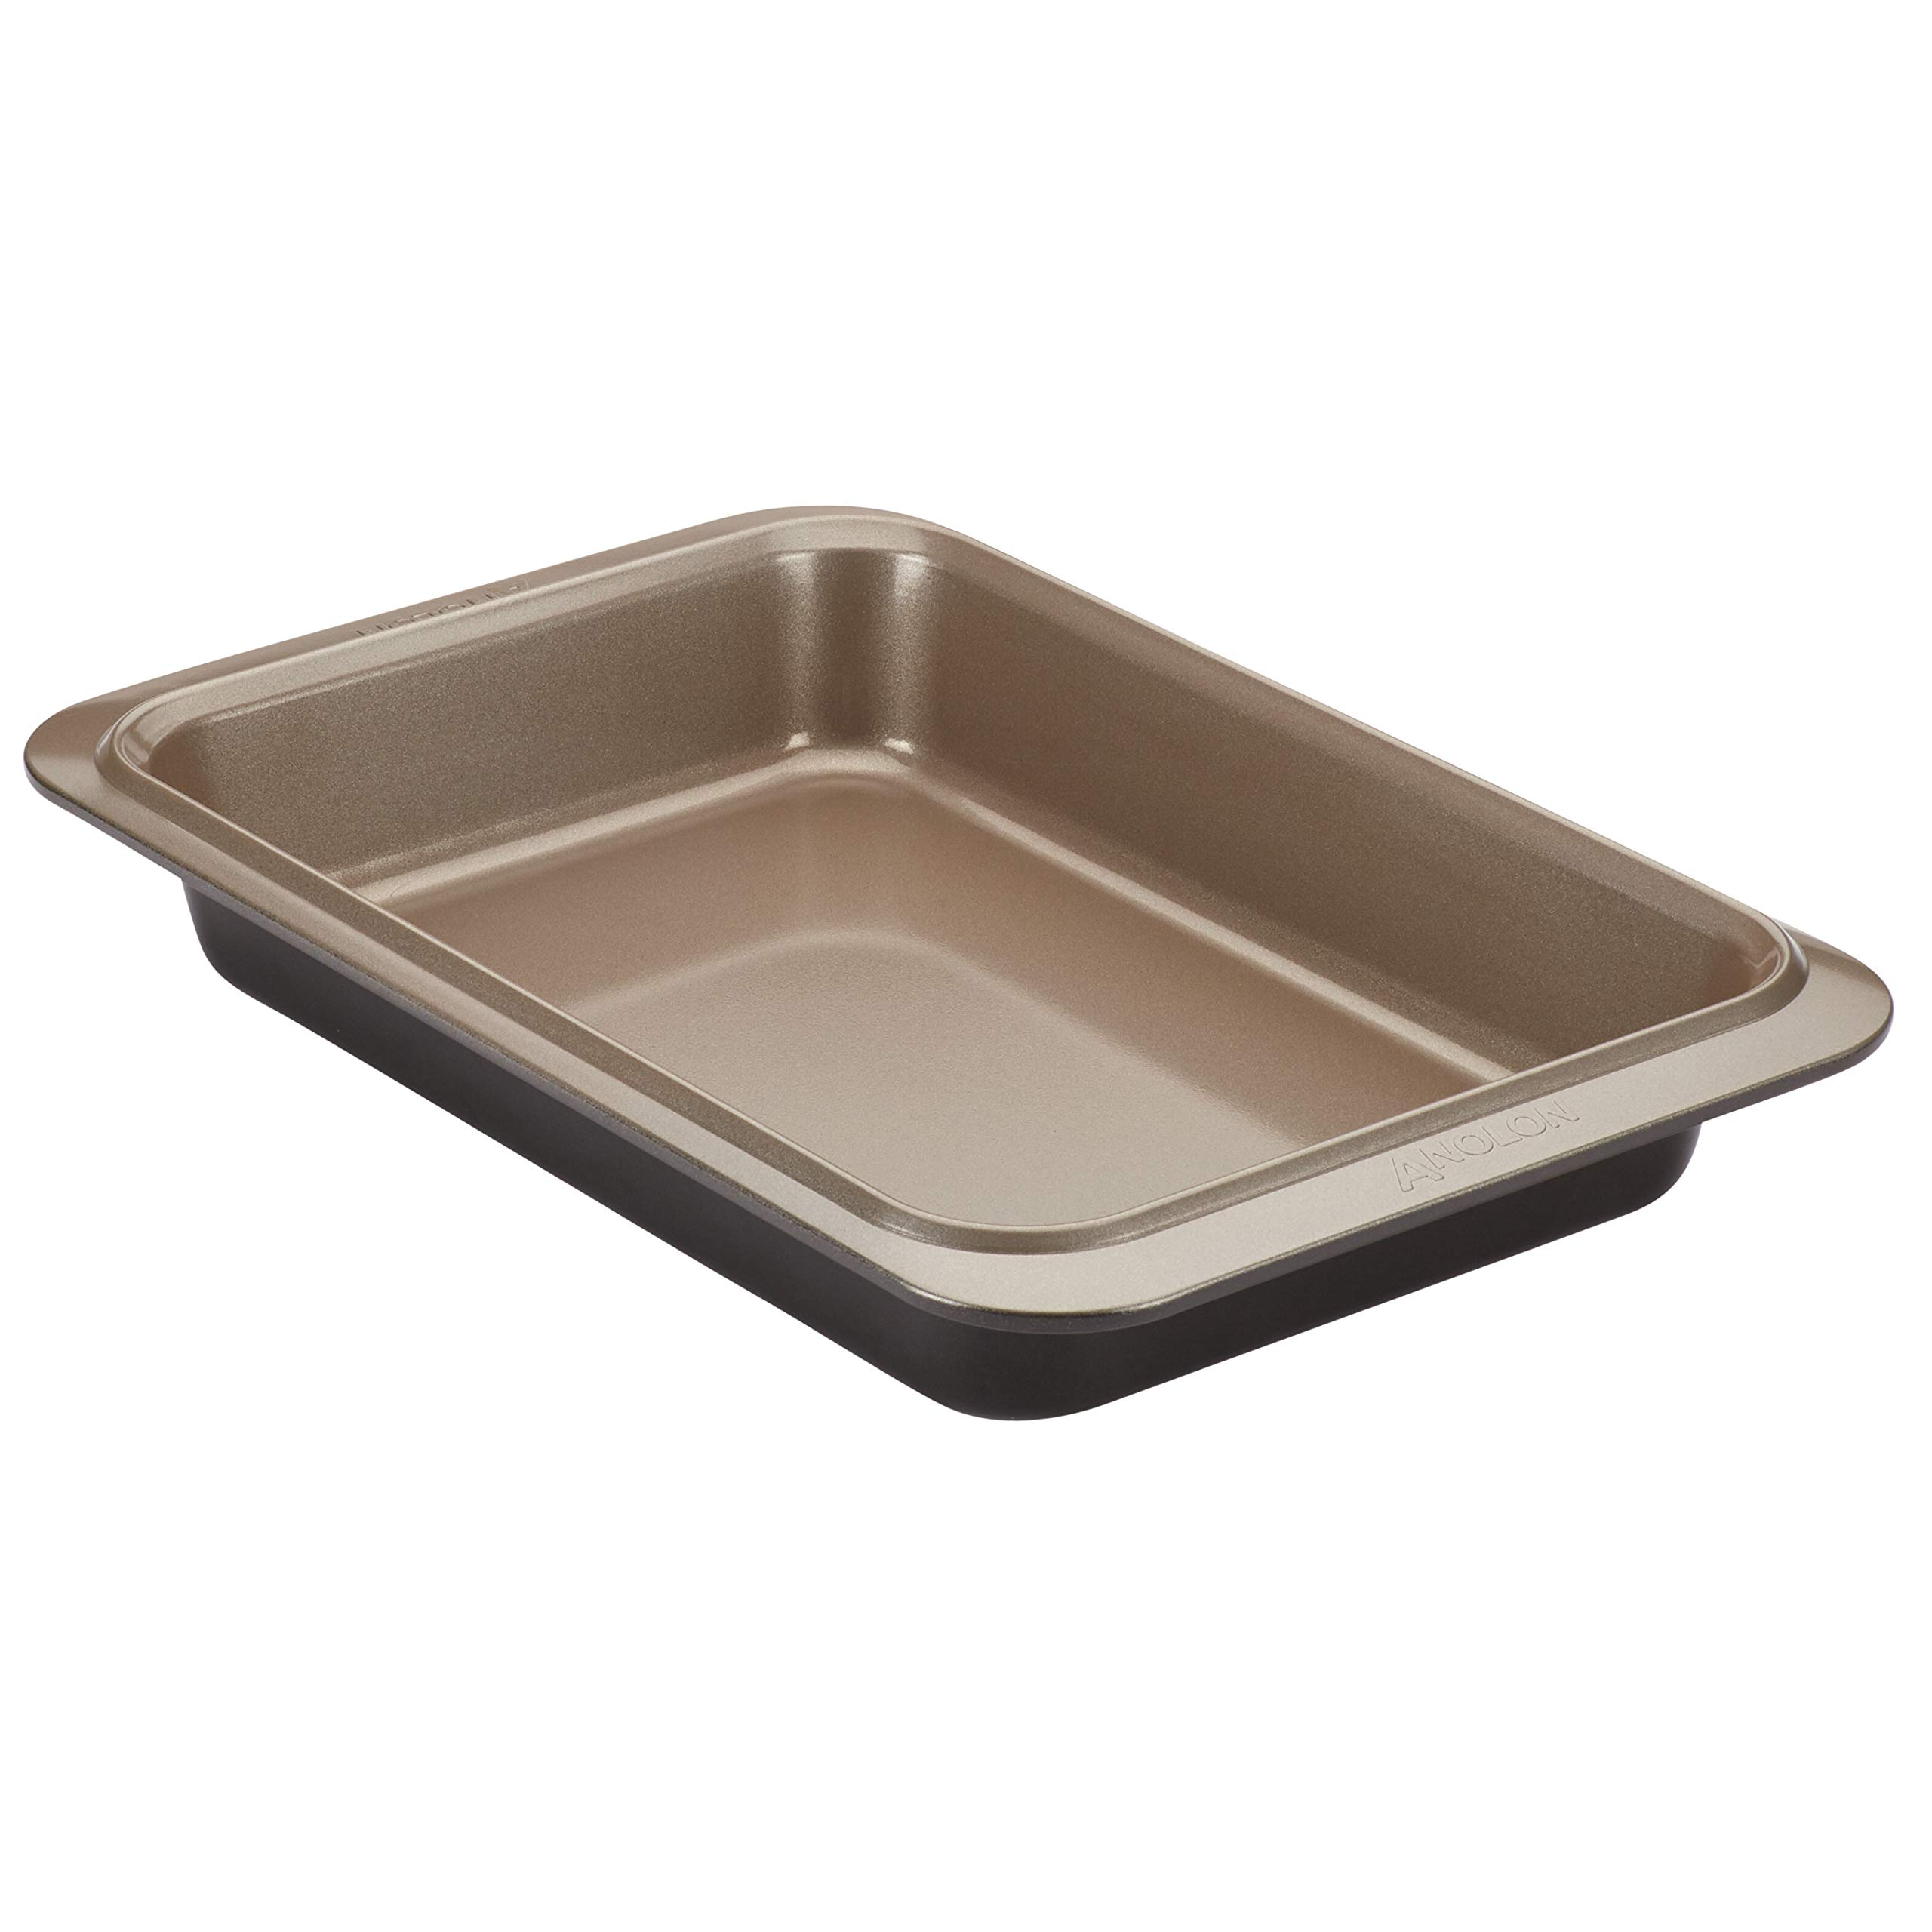 Anolon Eminence Nonstick Bakeware 9-Inch x 13-Inch Rectangular Cake Pan, Onyx with Umber Interior by Anolon (Image #4)